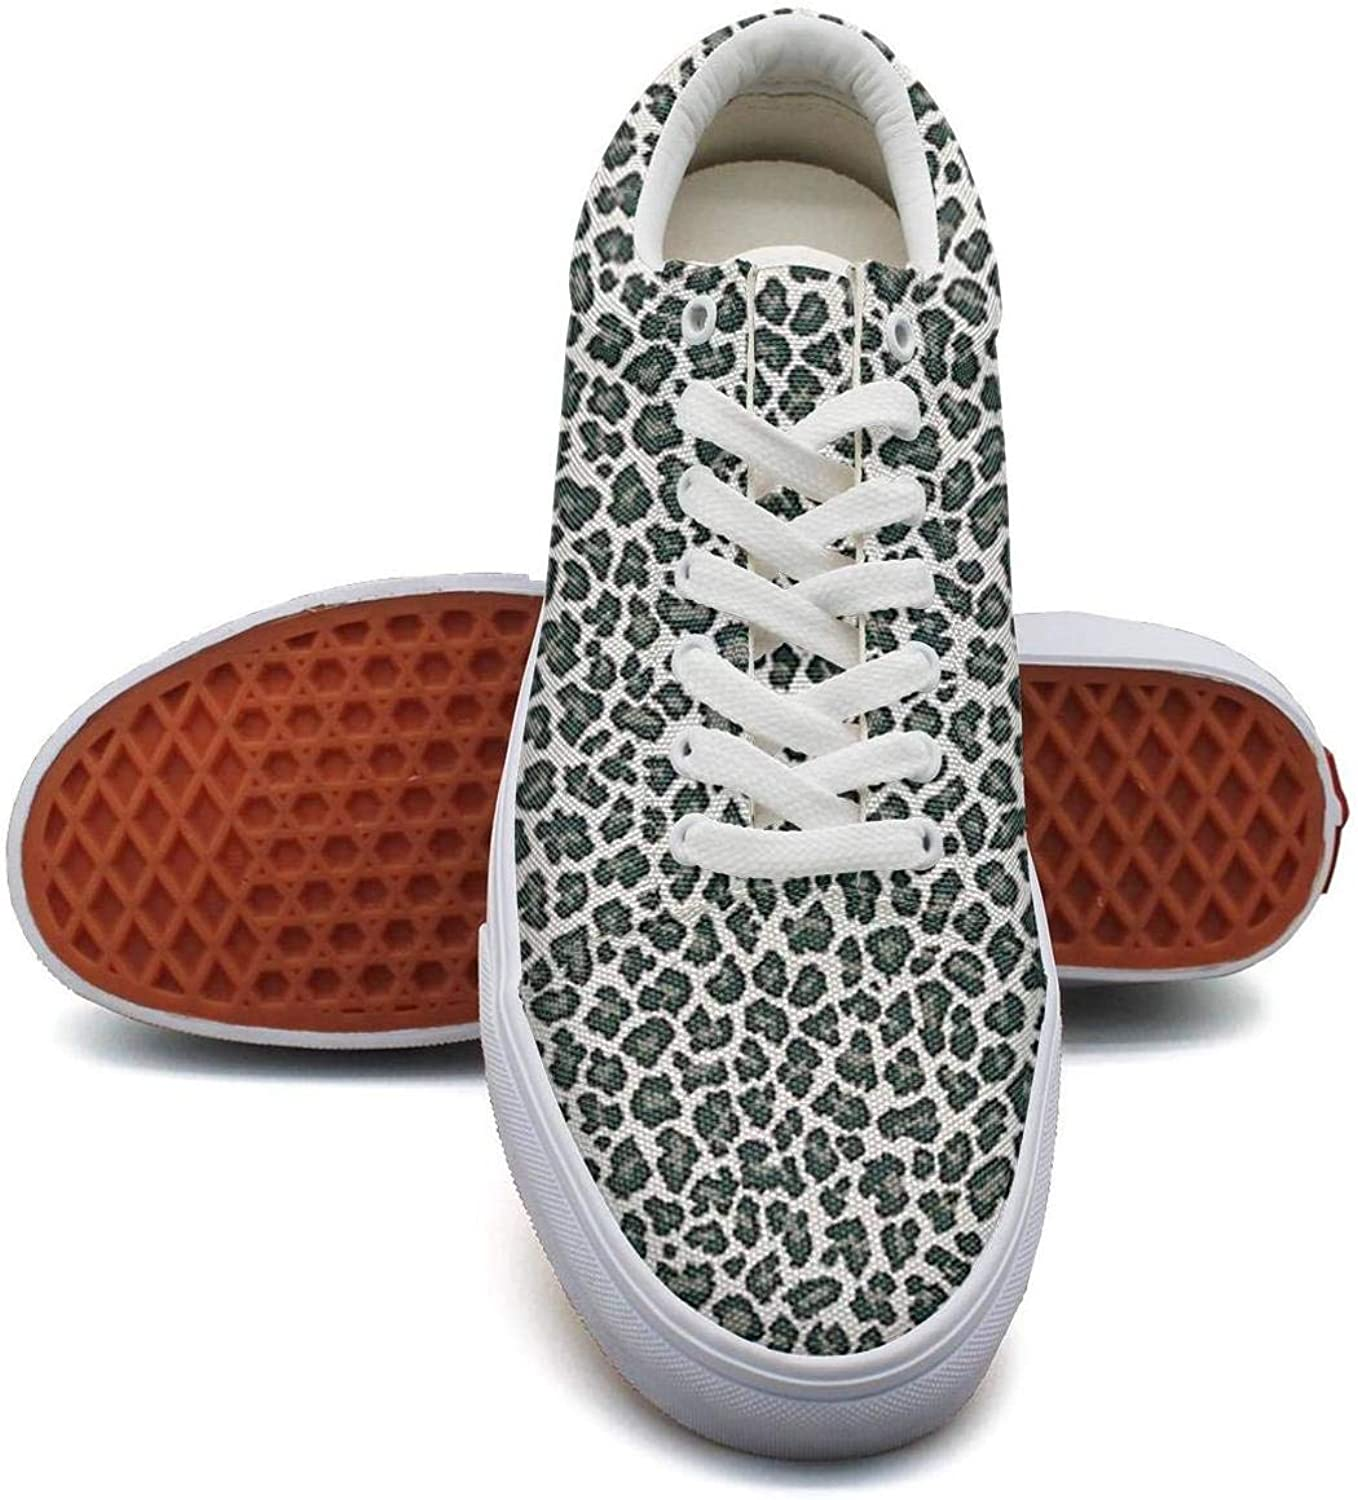 Sernfinjdr Casual lace-up Canvas shoes for Women Raining Dachshunds Running Sneaker shoes